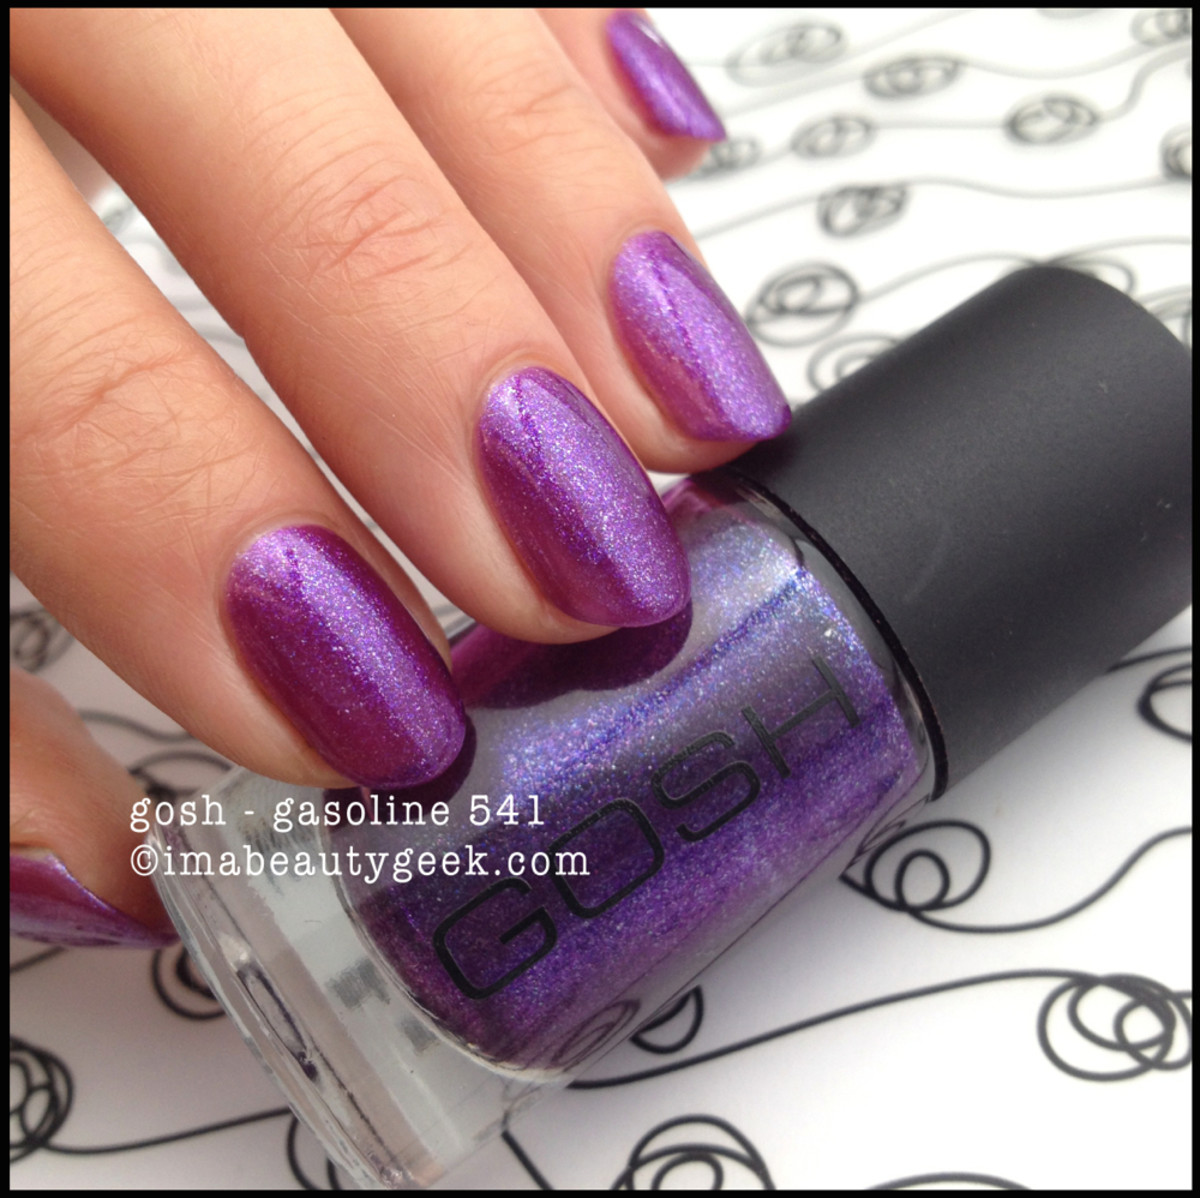 Gosh Polish Gasoline 541 2014 Beautygeeks